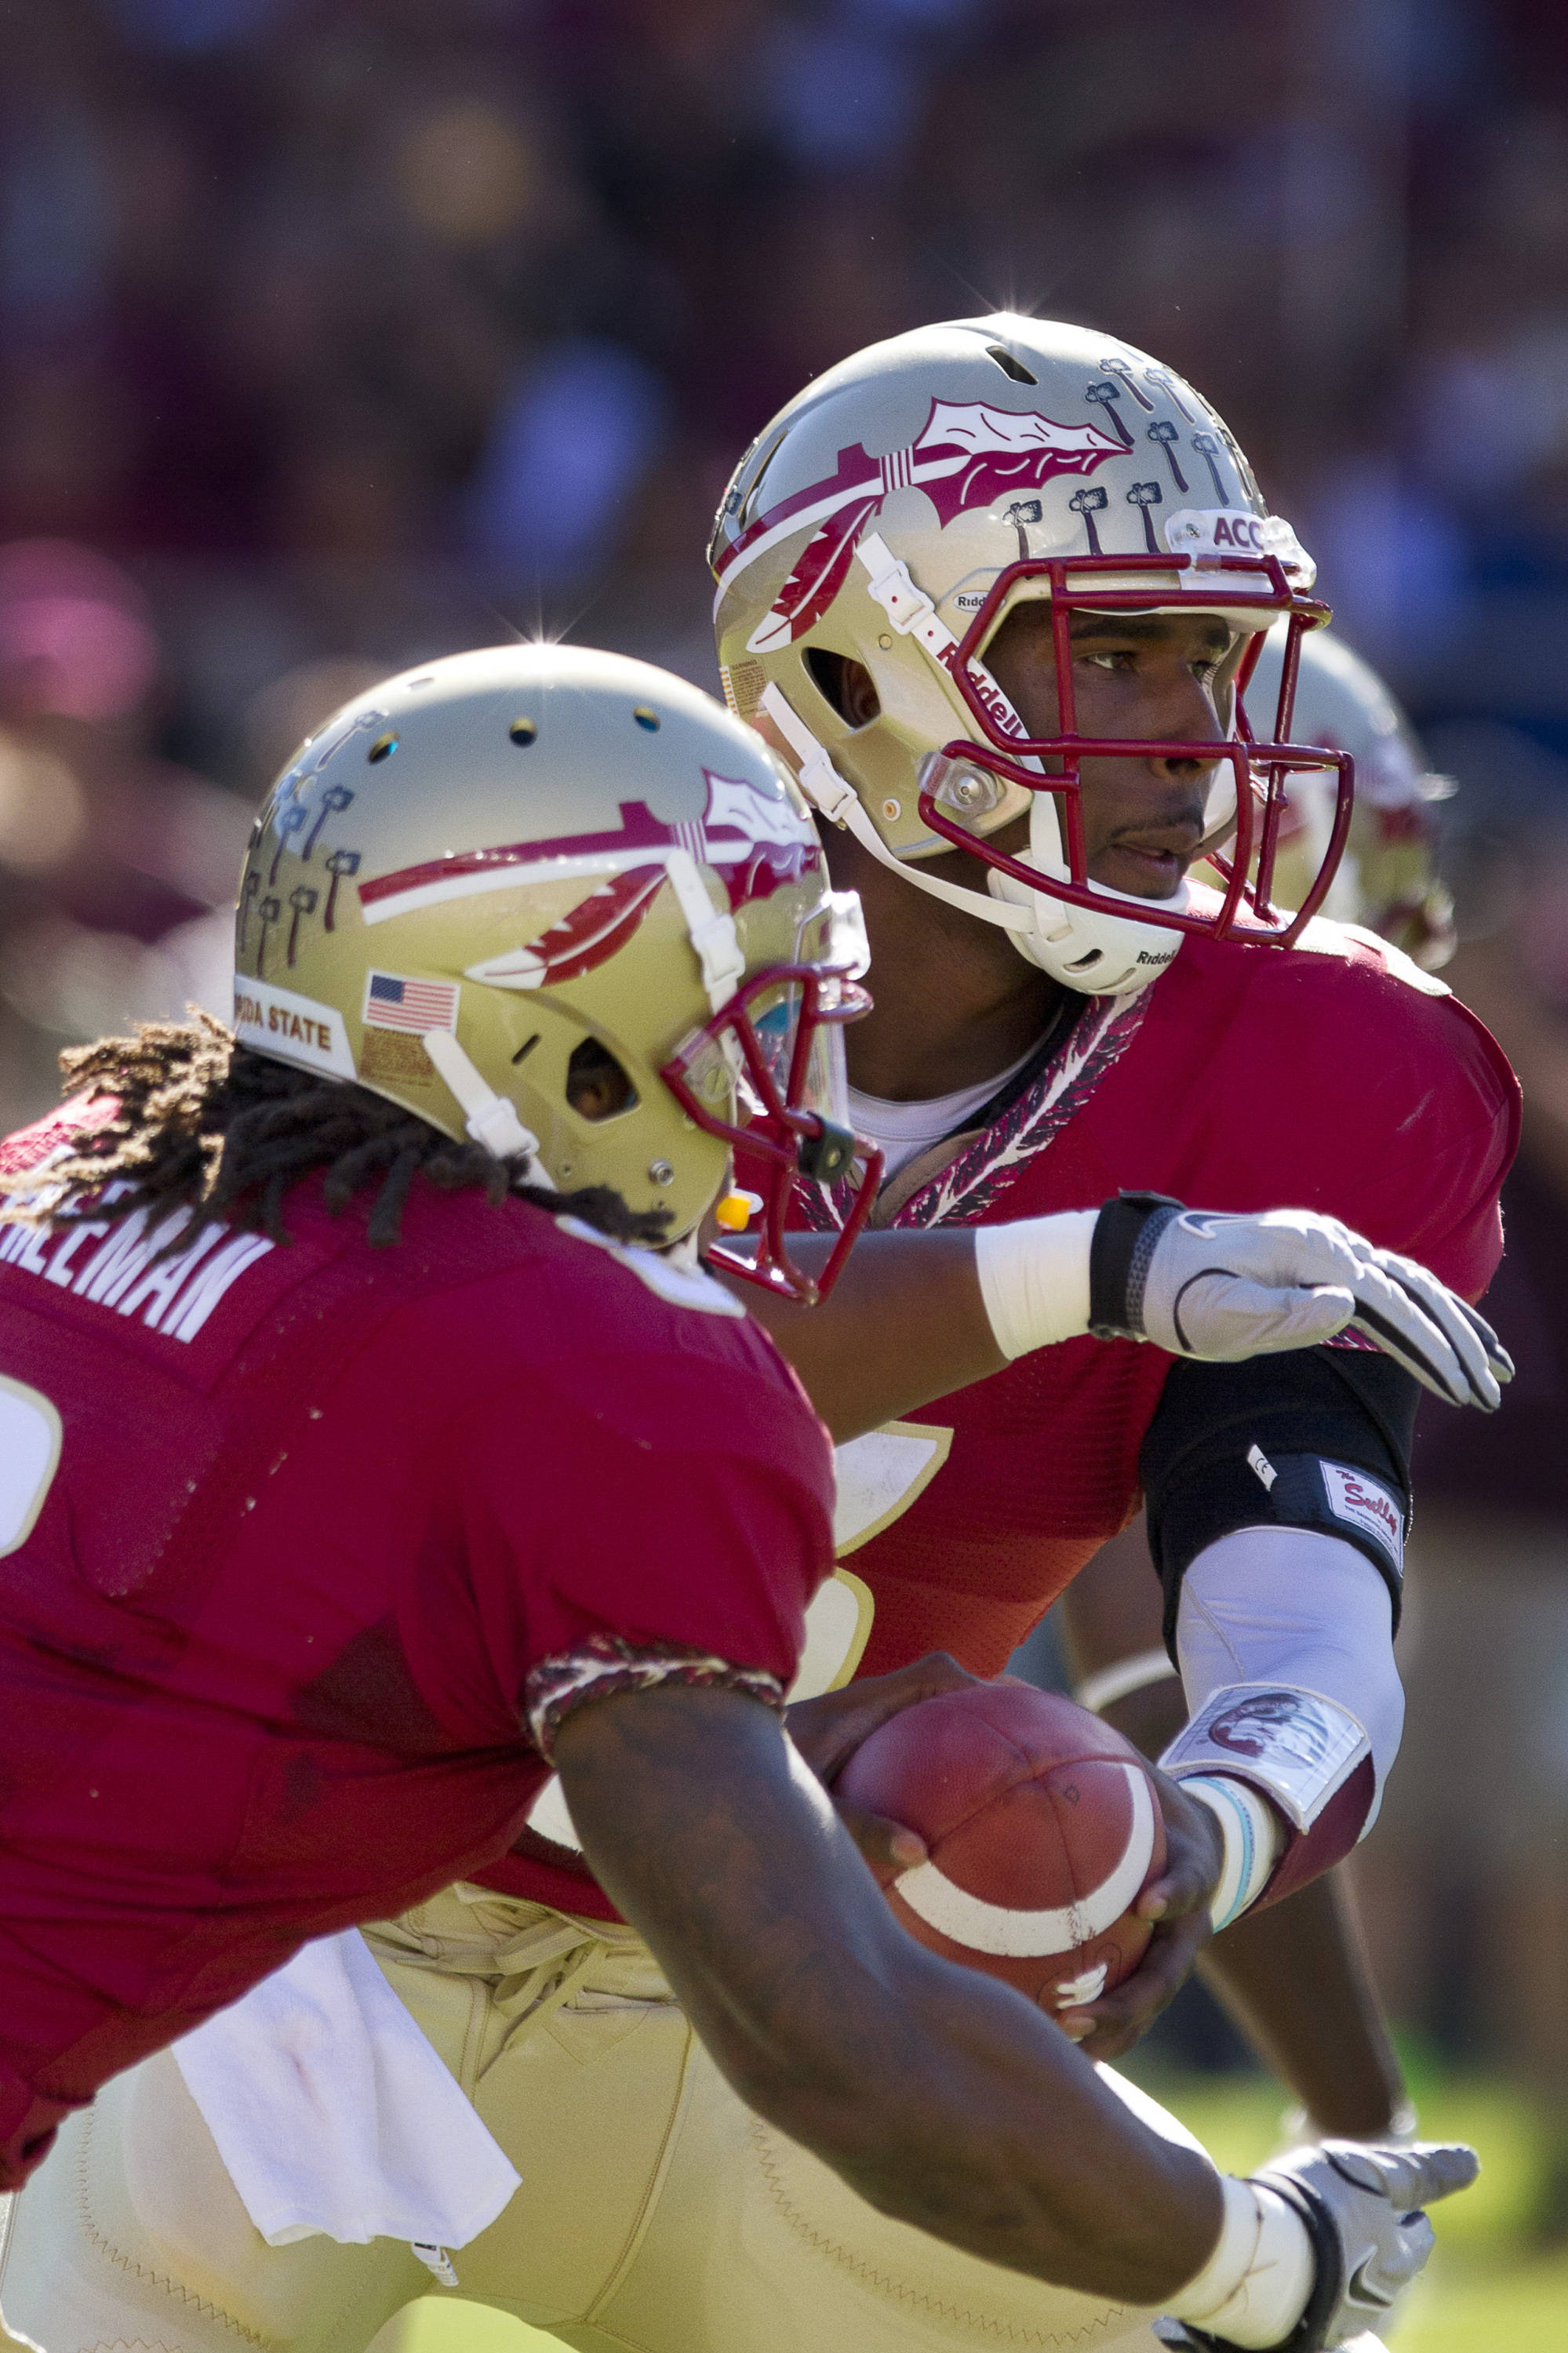 EJ Manuel (3) hands the ball off to  EJ Manuel (3), Devonta Freeman (8) during the football game against Maryland in Tallahassee, Florida on October 22, 2011.